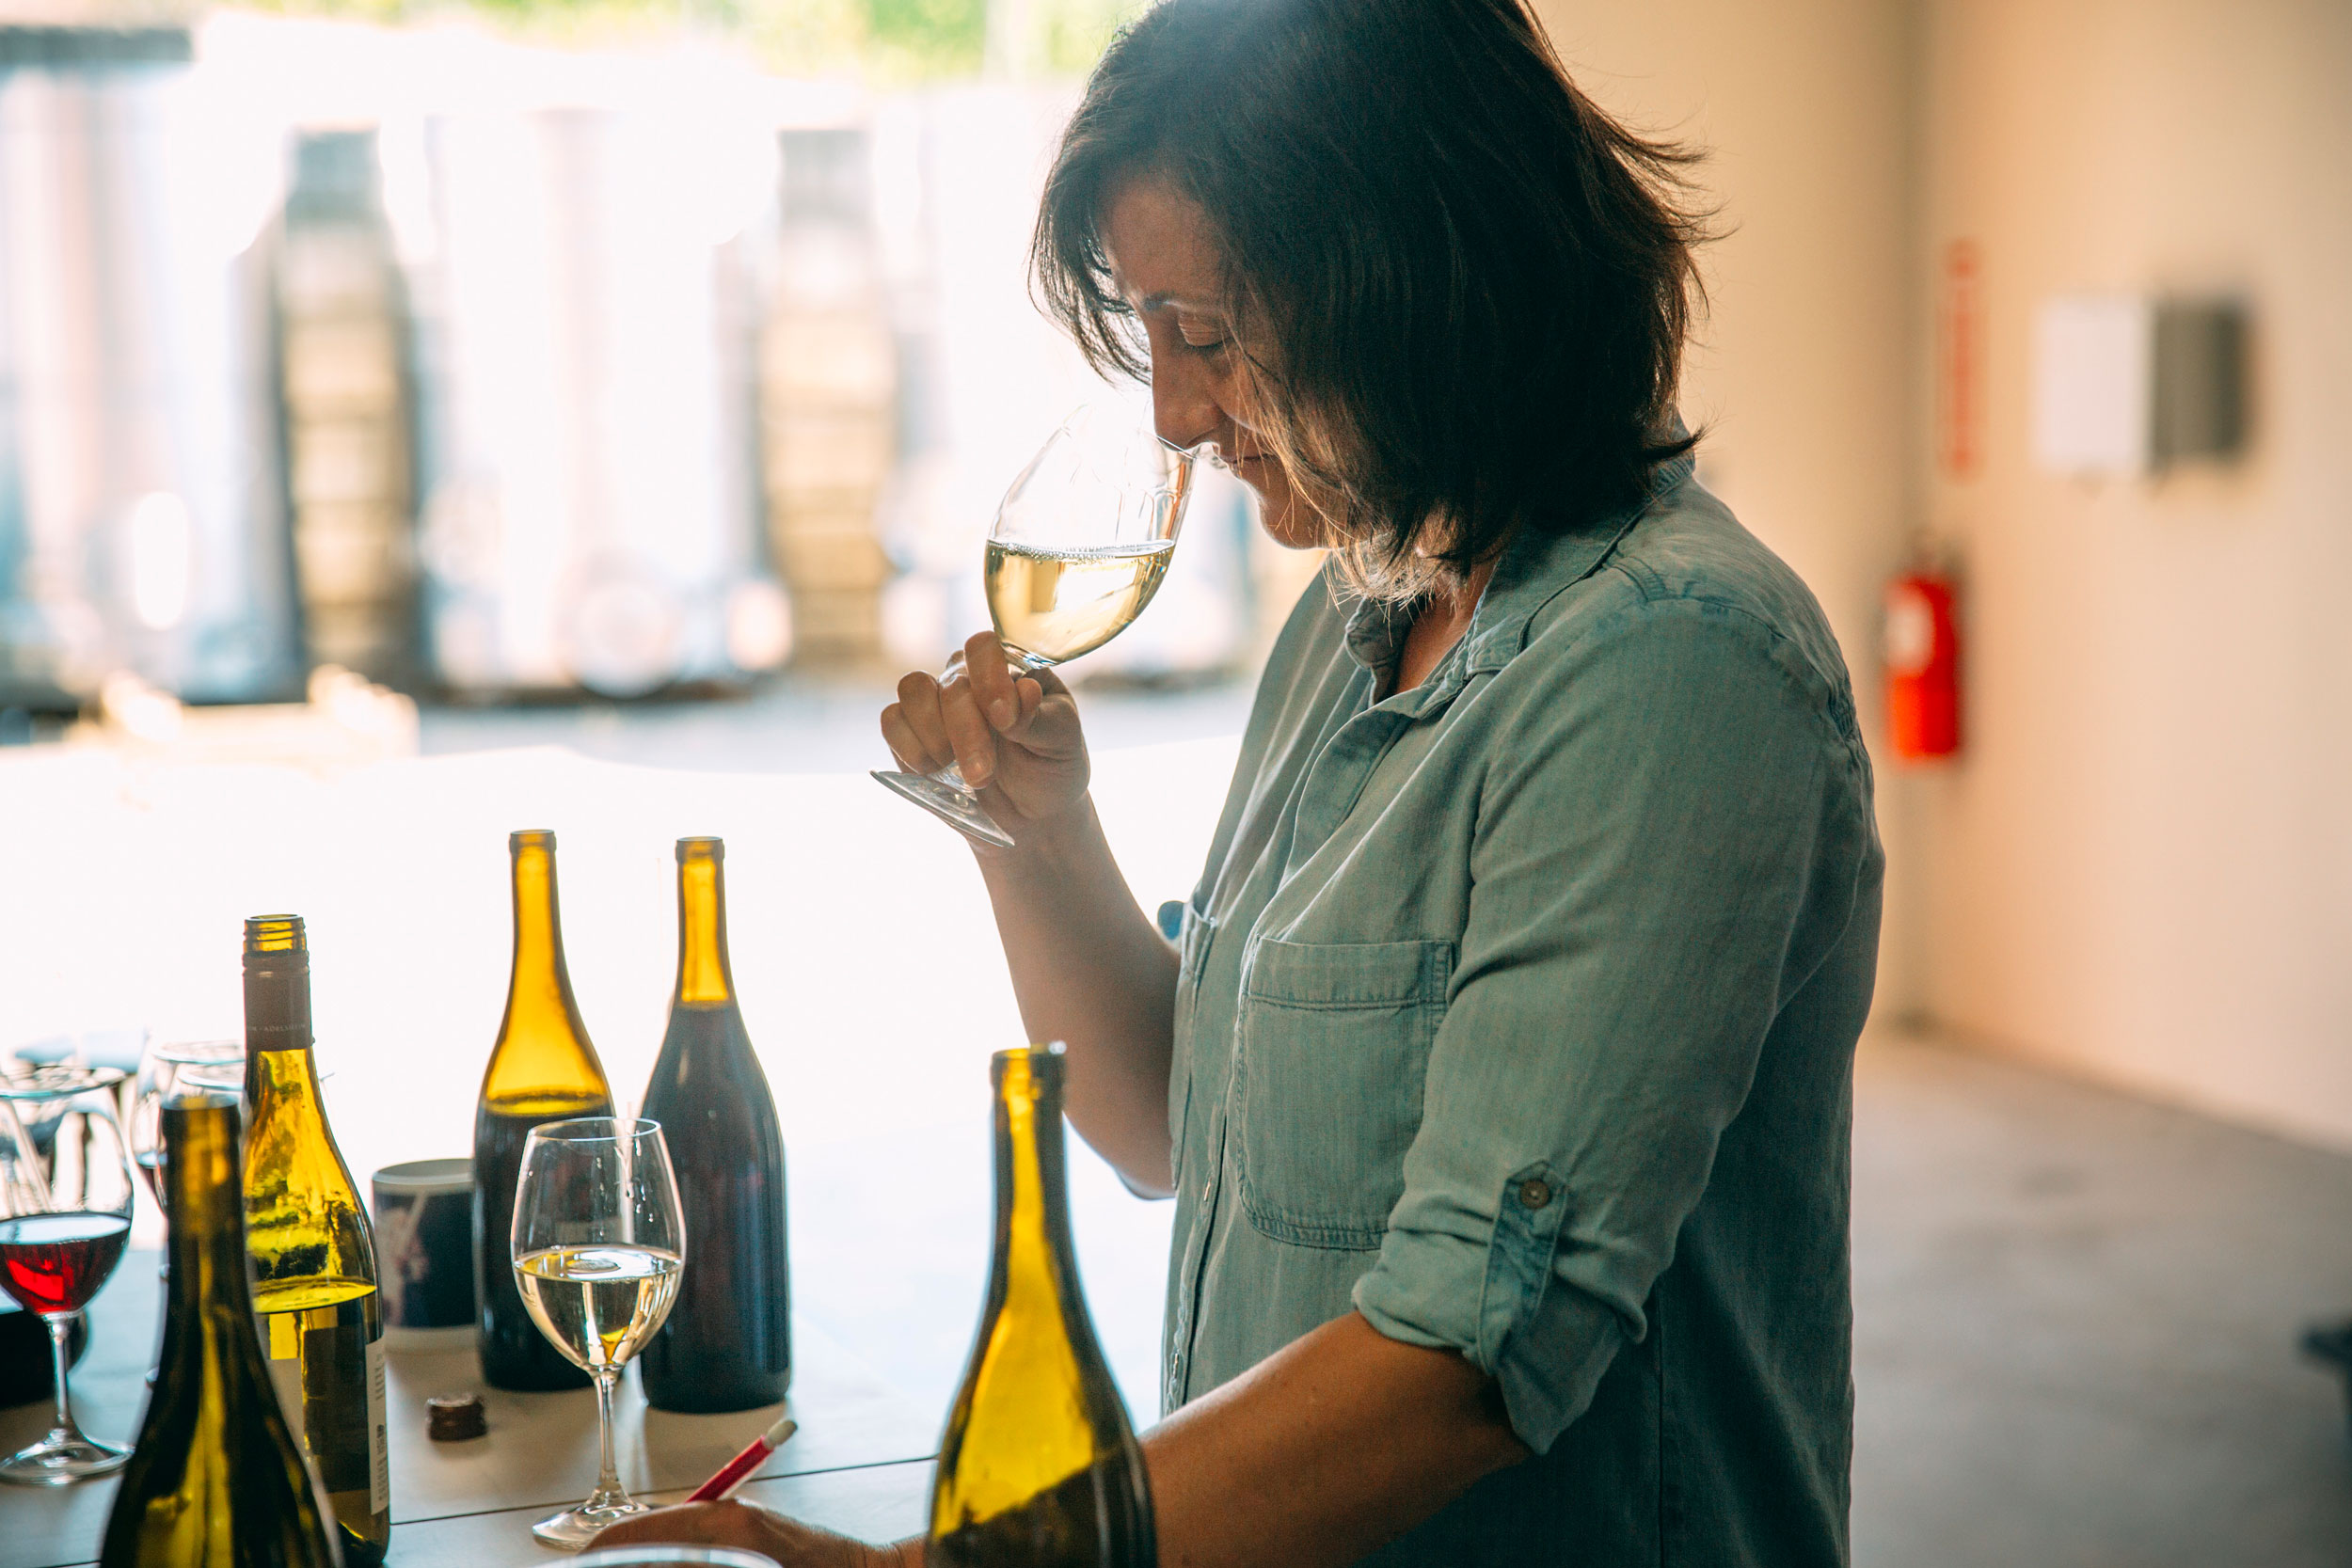 Gina Hennen Tastes Different Wines